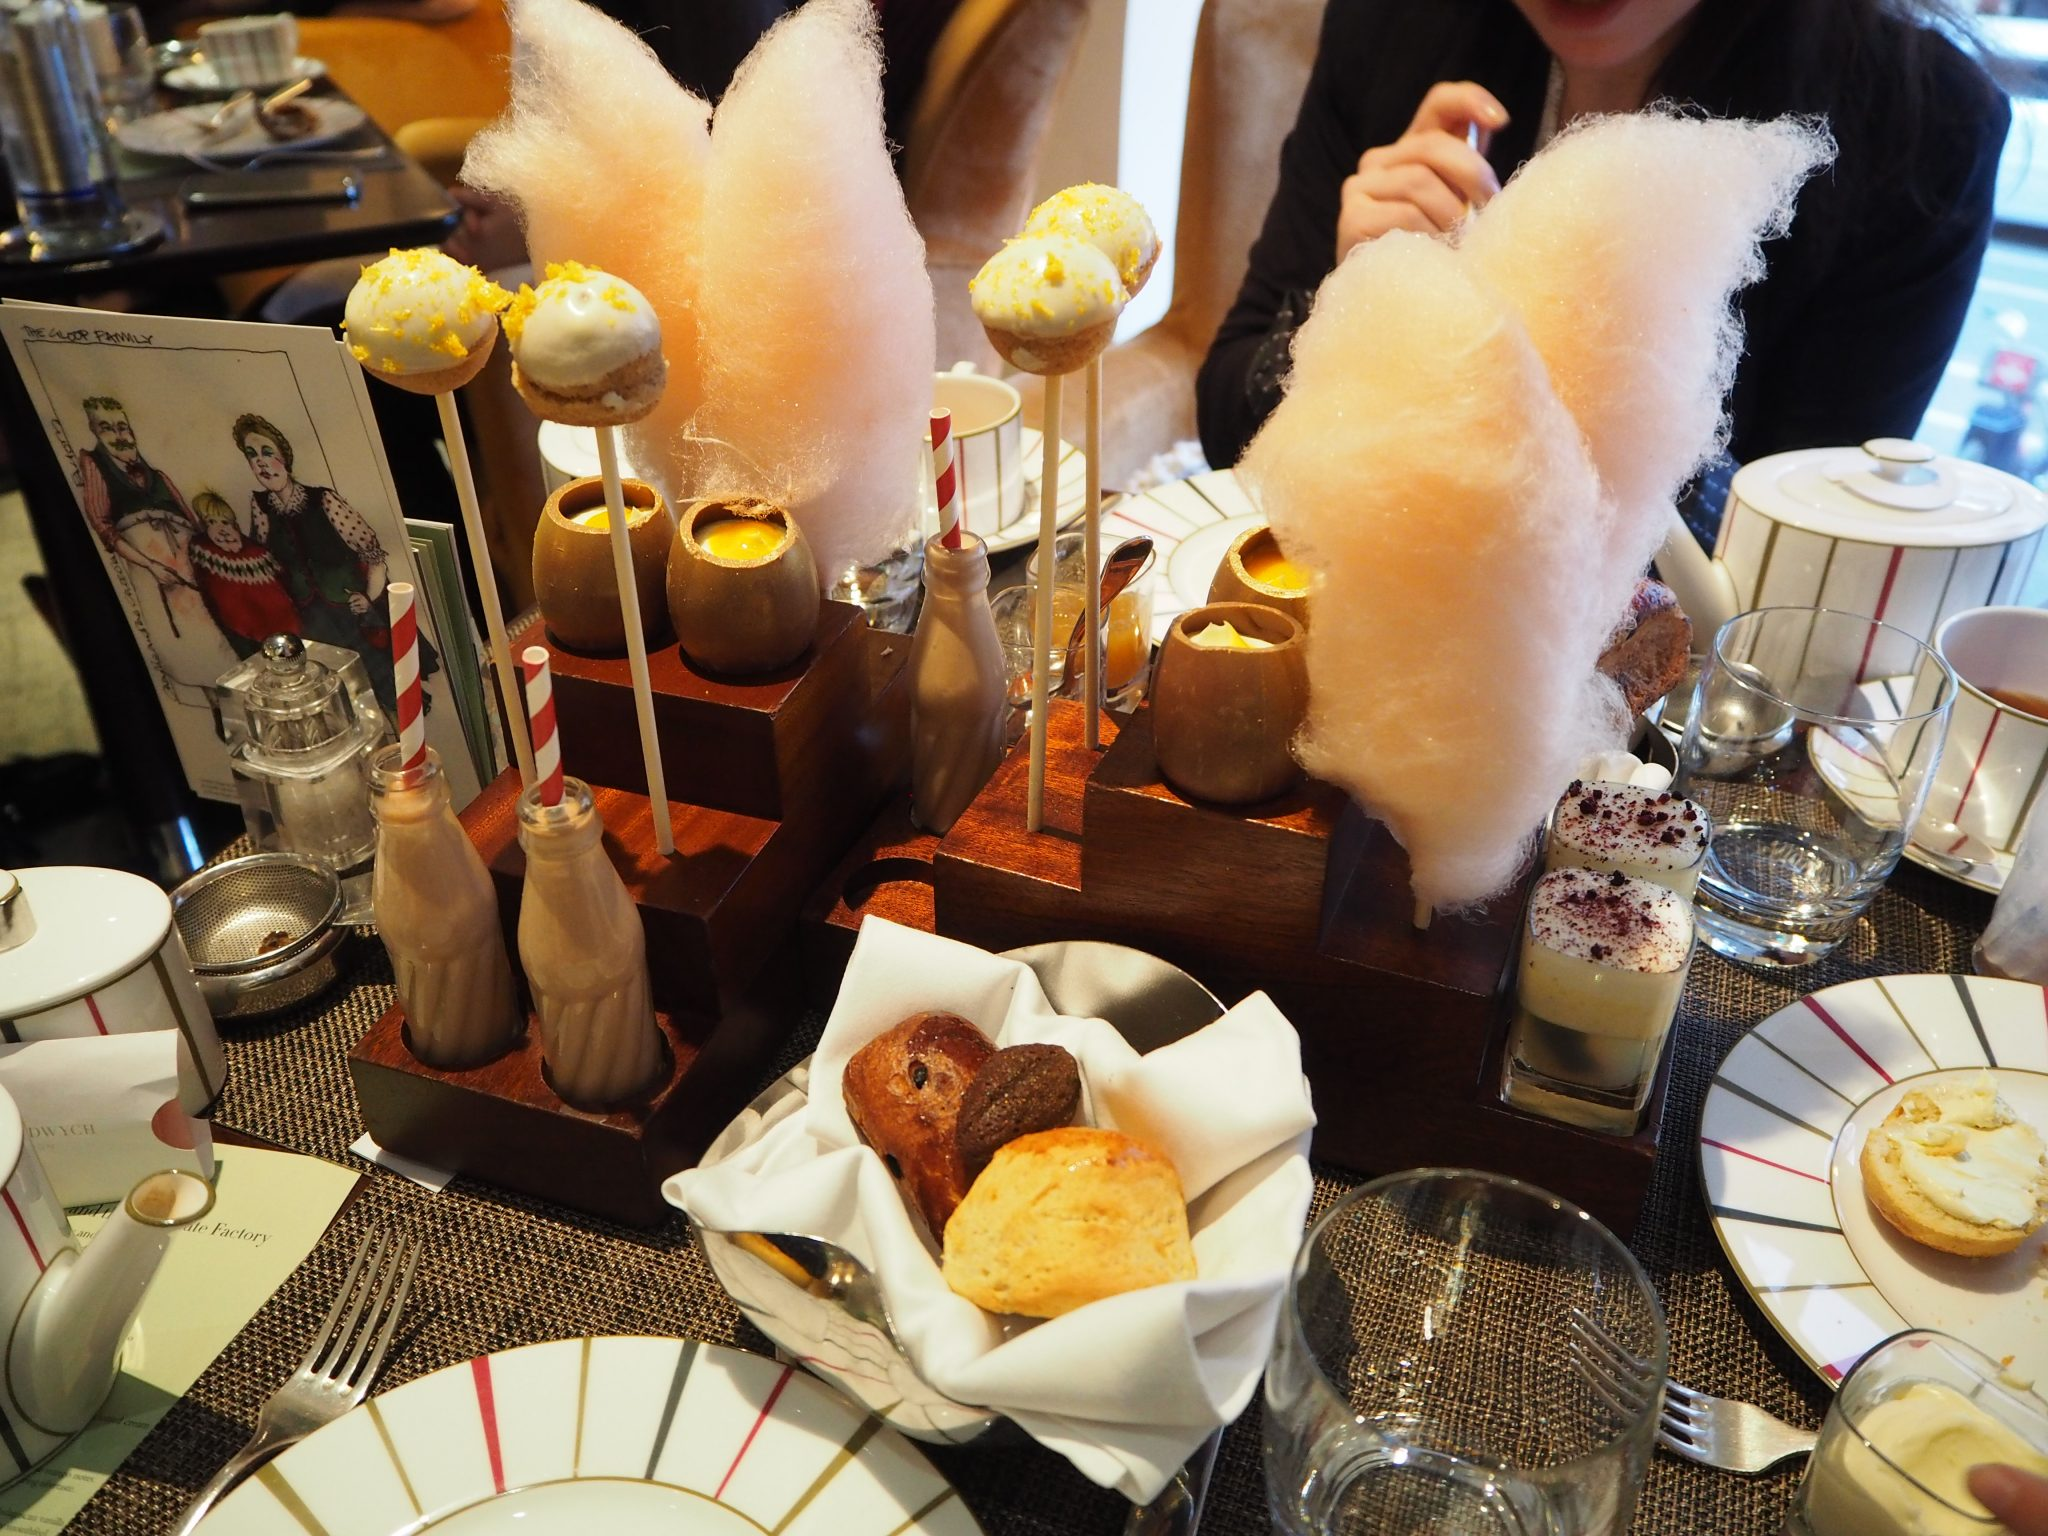 The Sweets - Charlie & The Chocolate Factory Afternoon Tea